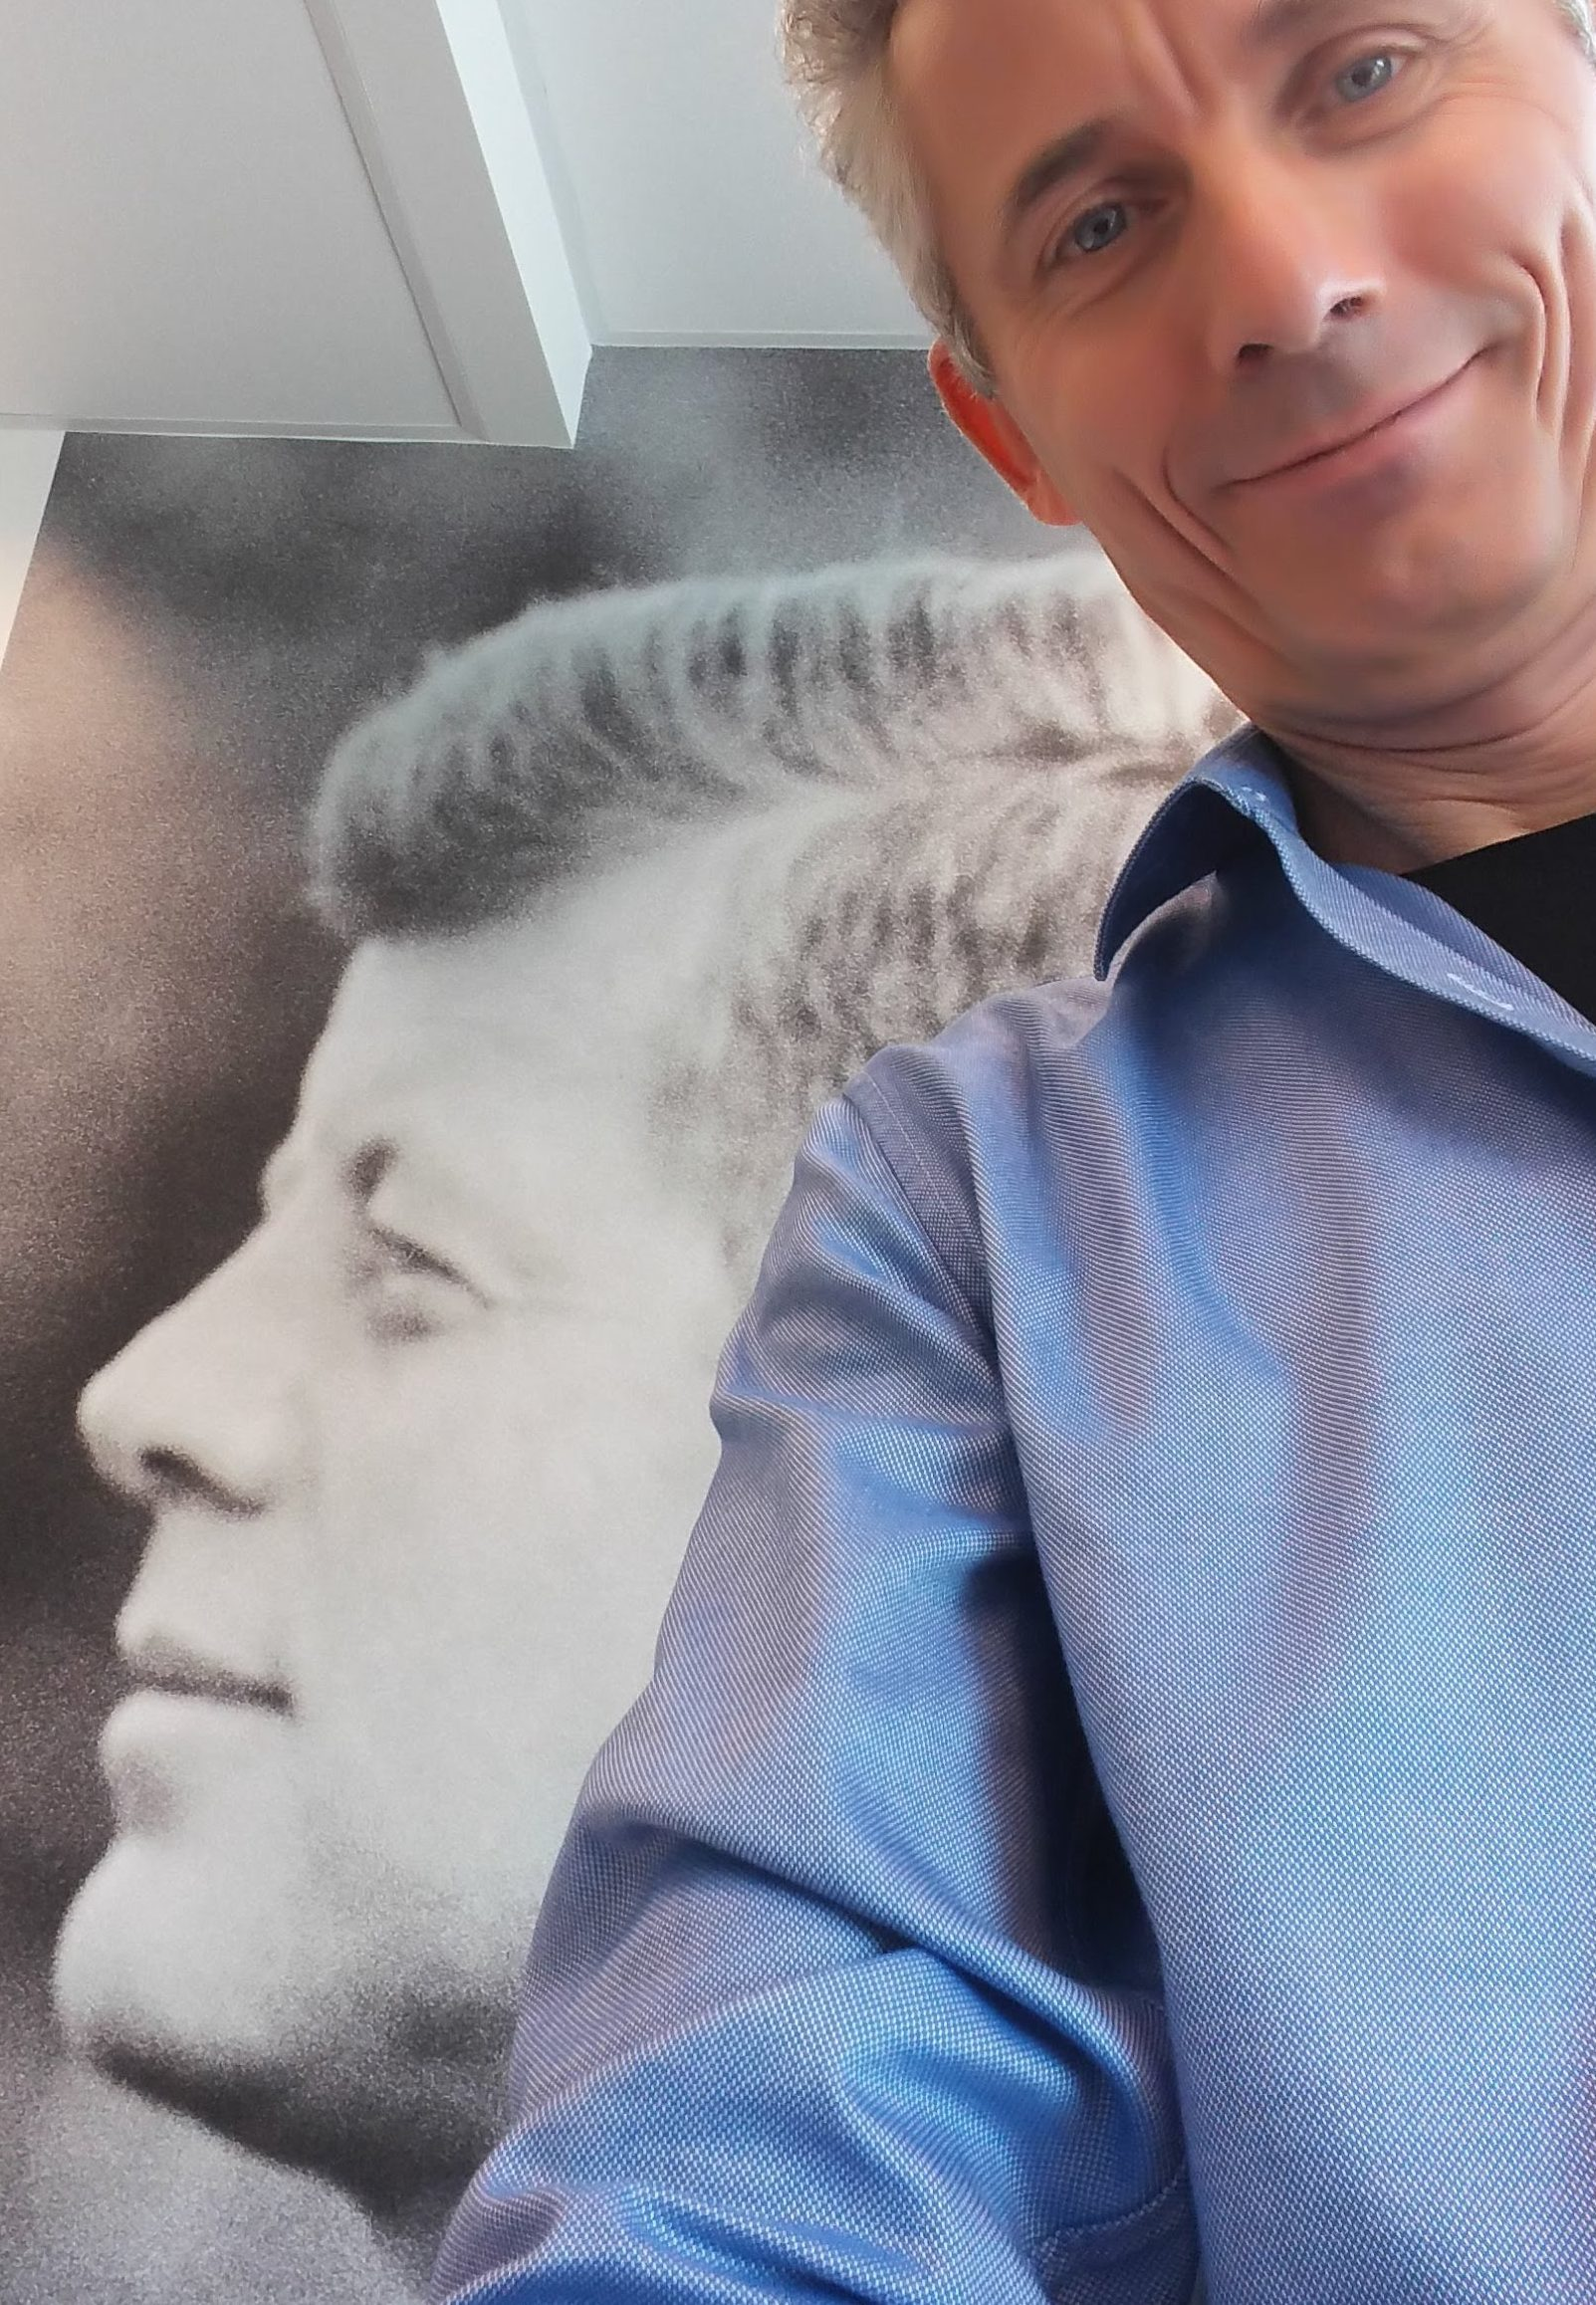 Me with John F. Kennedy: look at two rhetorical devices that JKF loved to used.